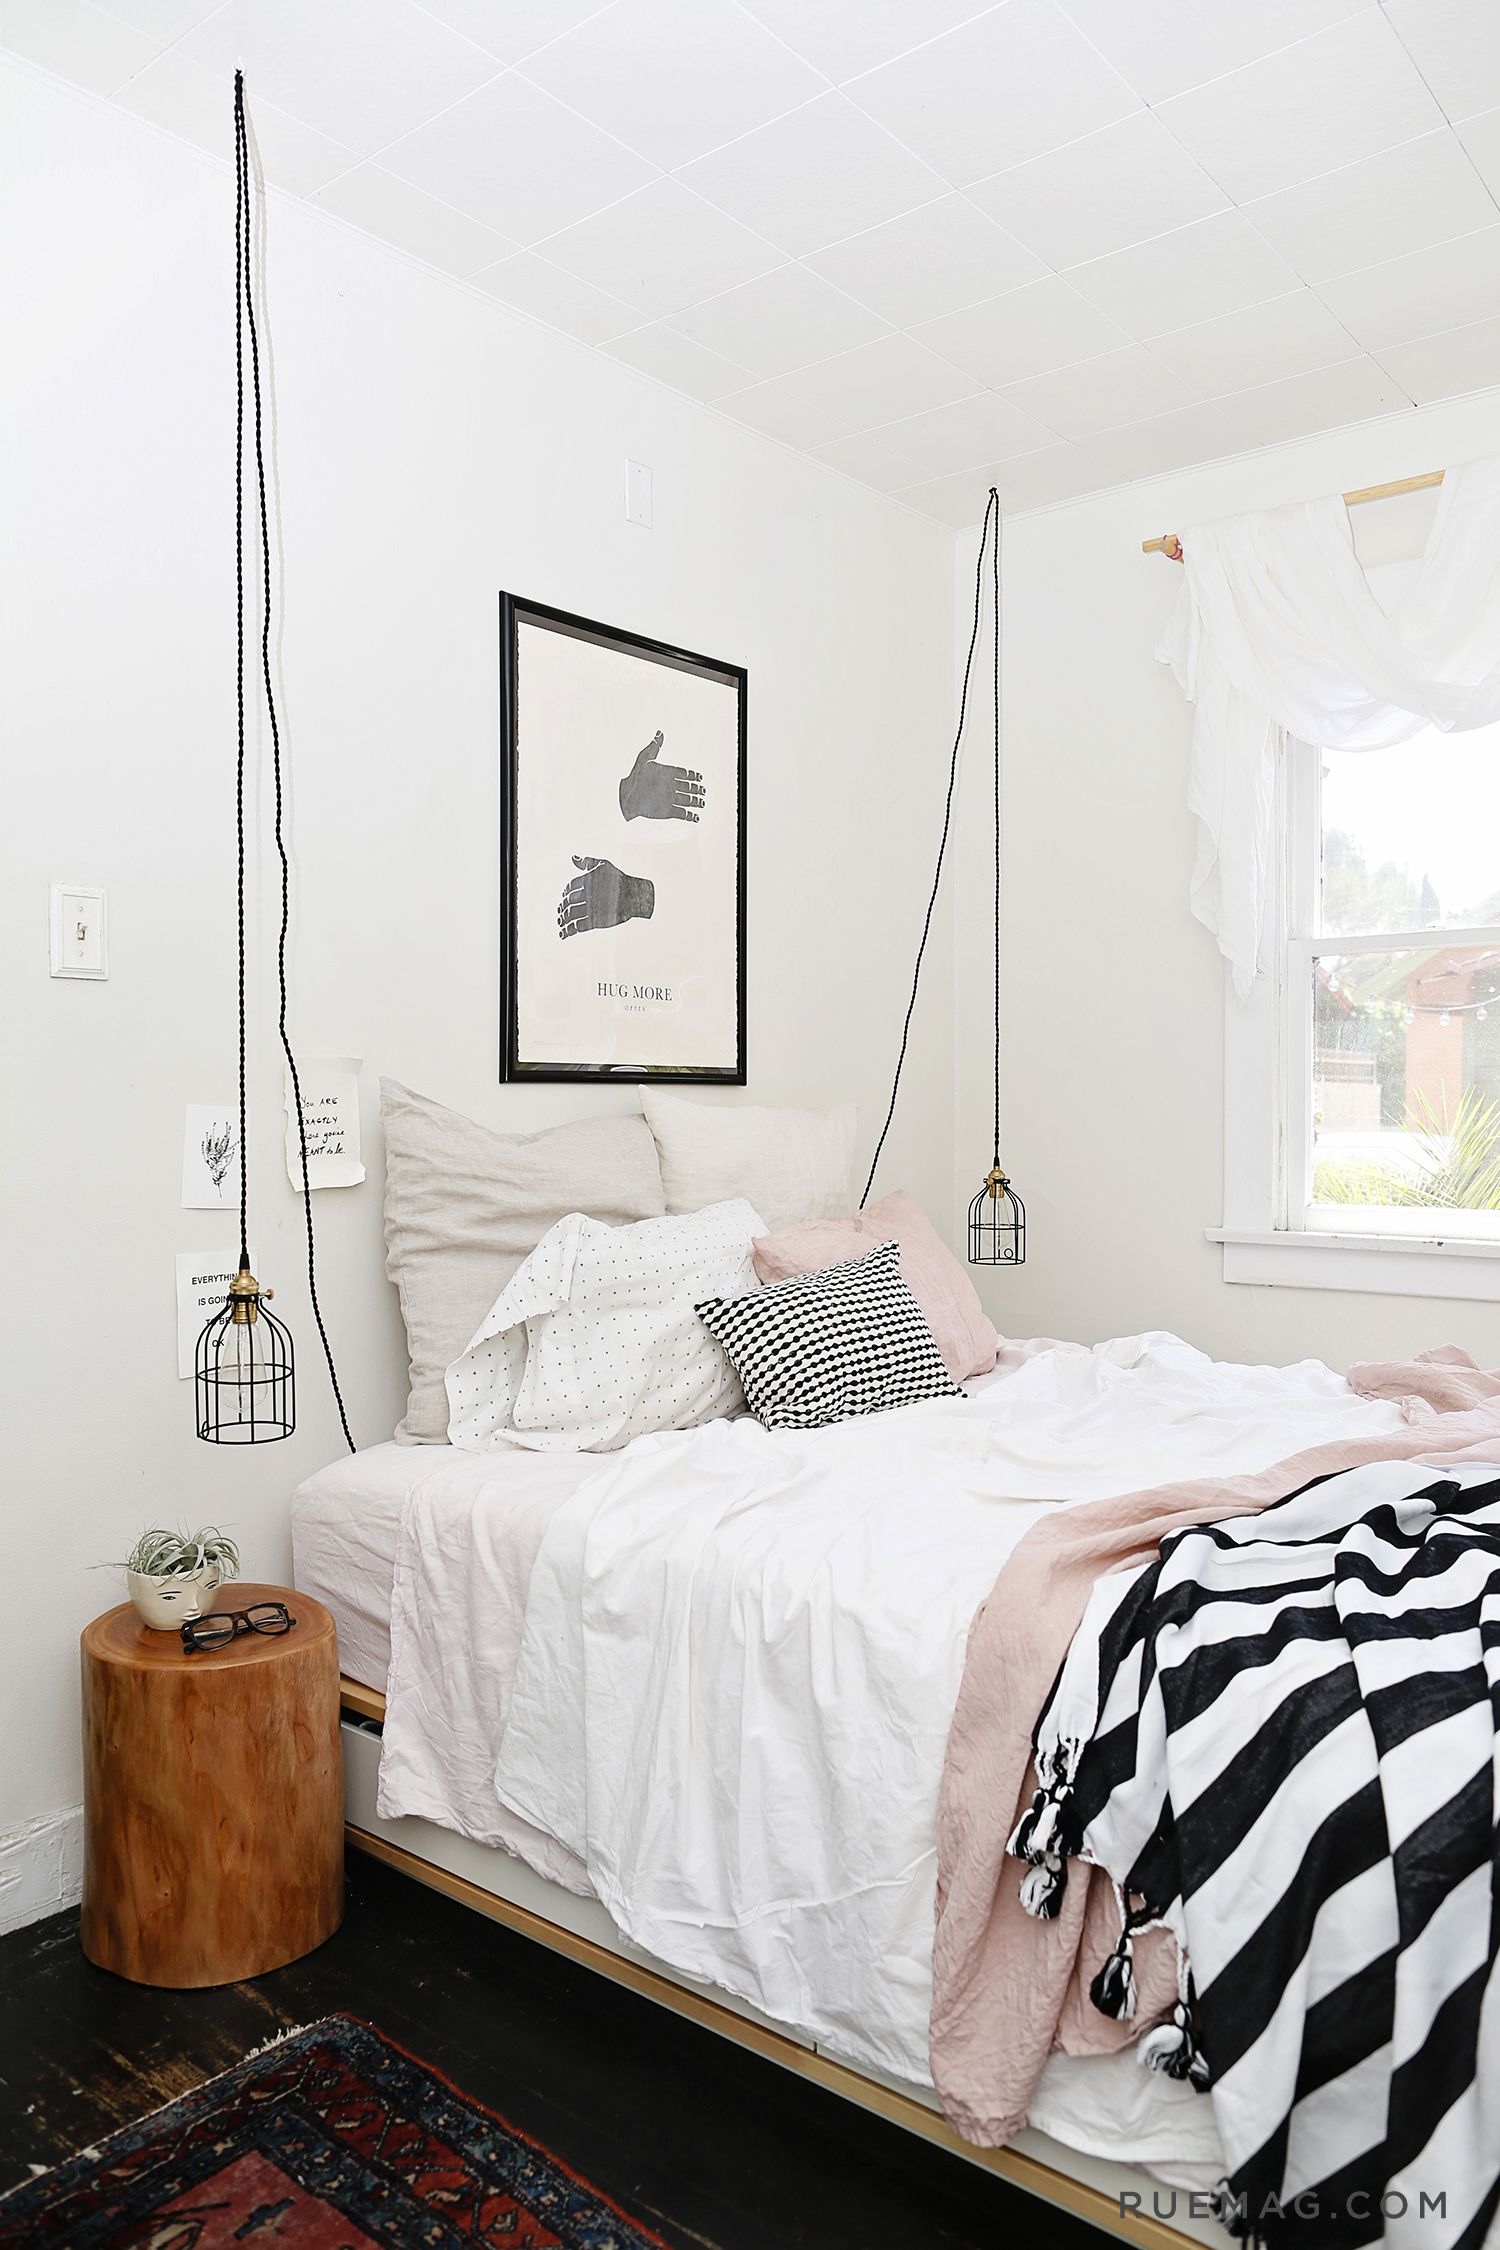 Bedroom hanging lamps - Love This Colour Scheme Light Light Pink Looks So Good With Black And White Little Bit Of Bluey Green Pastel Thrown In Hanging Pendant Bedside Lights